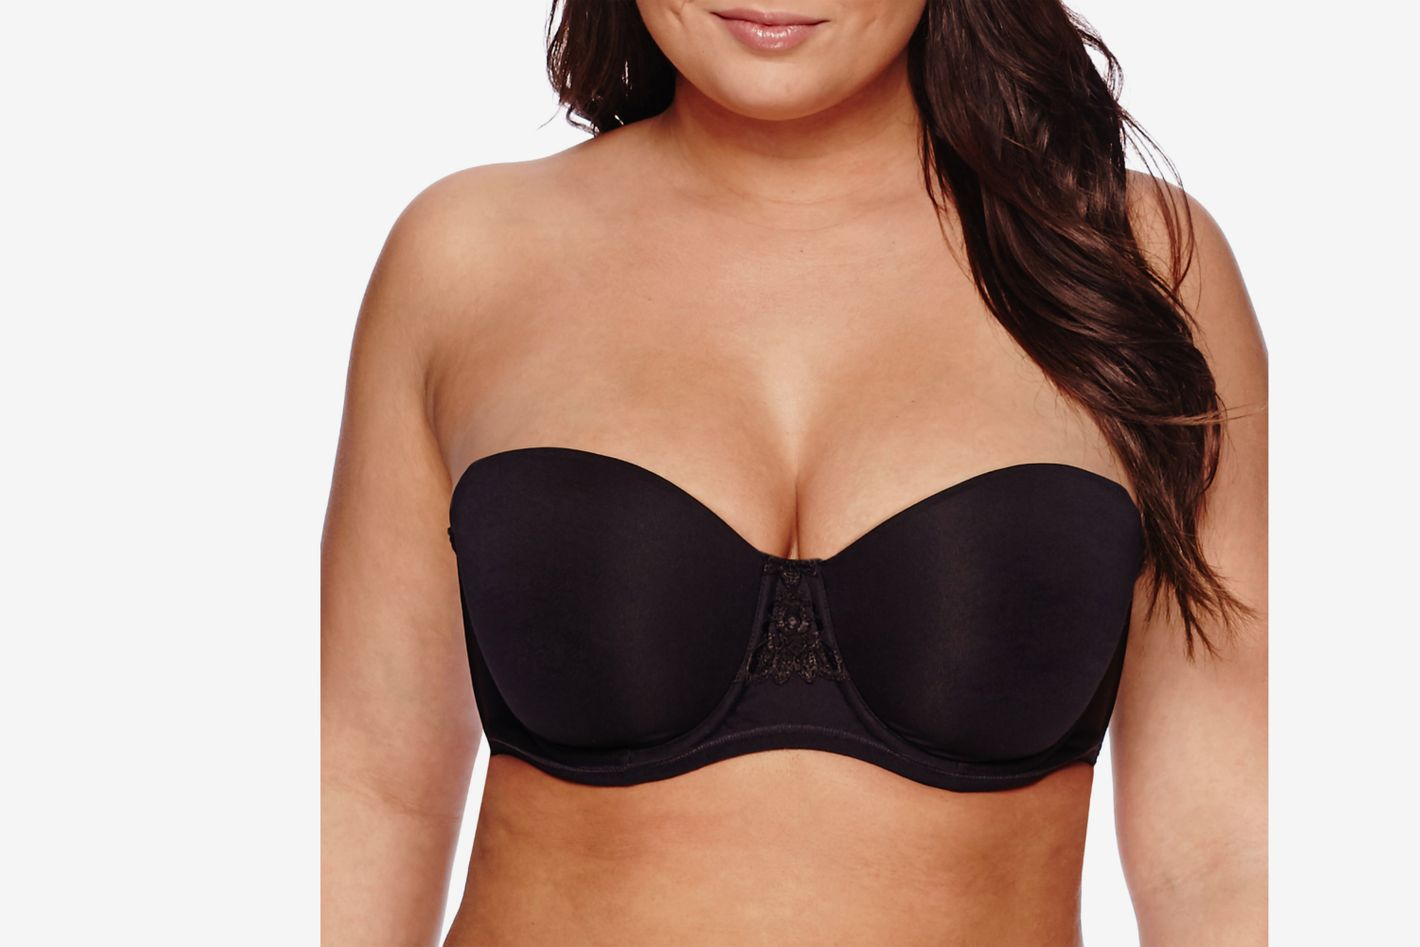 c975ce4b7f 23 Best Strapless Bras You Can Buy in 2018